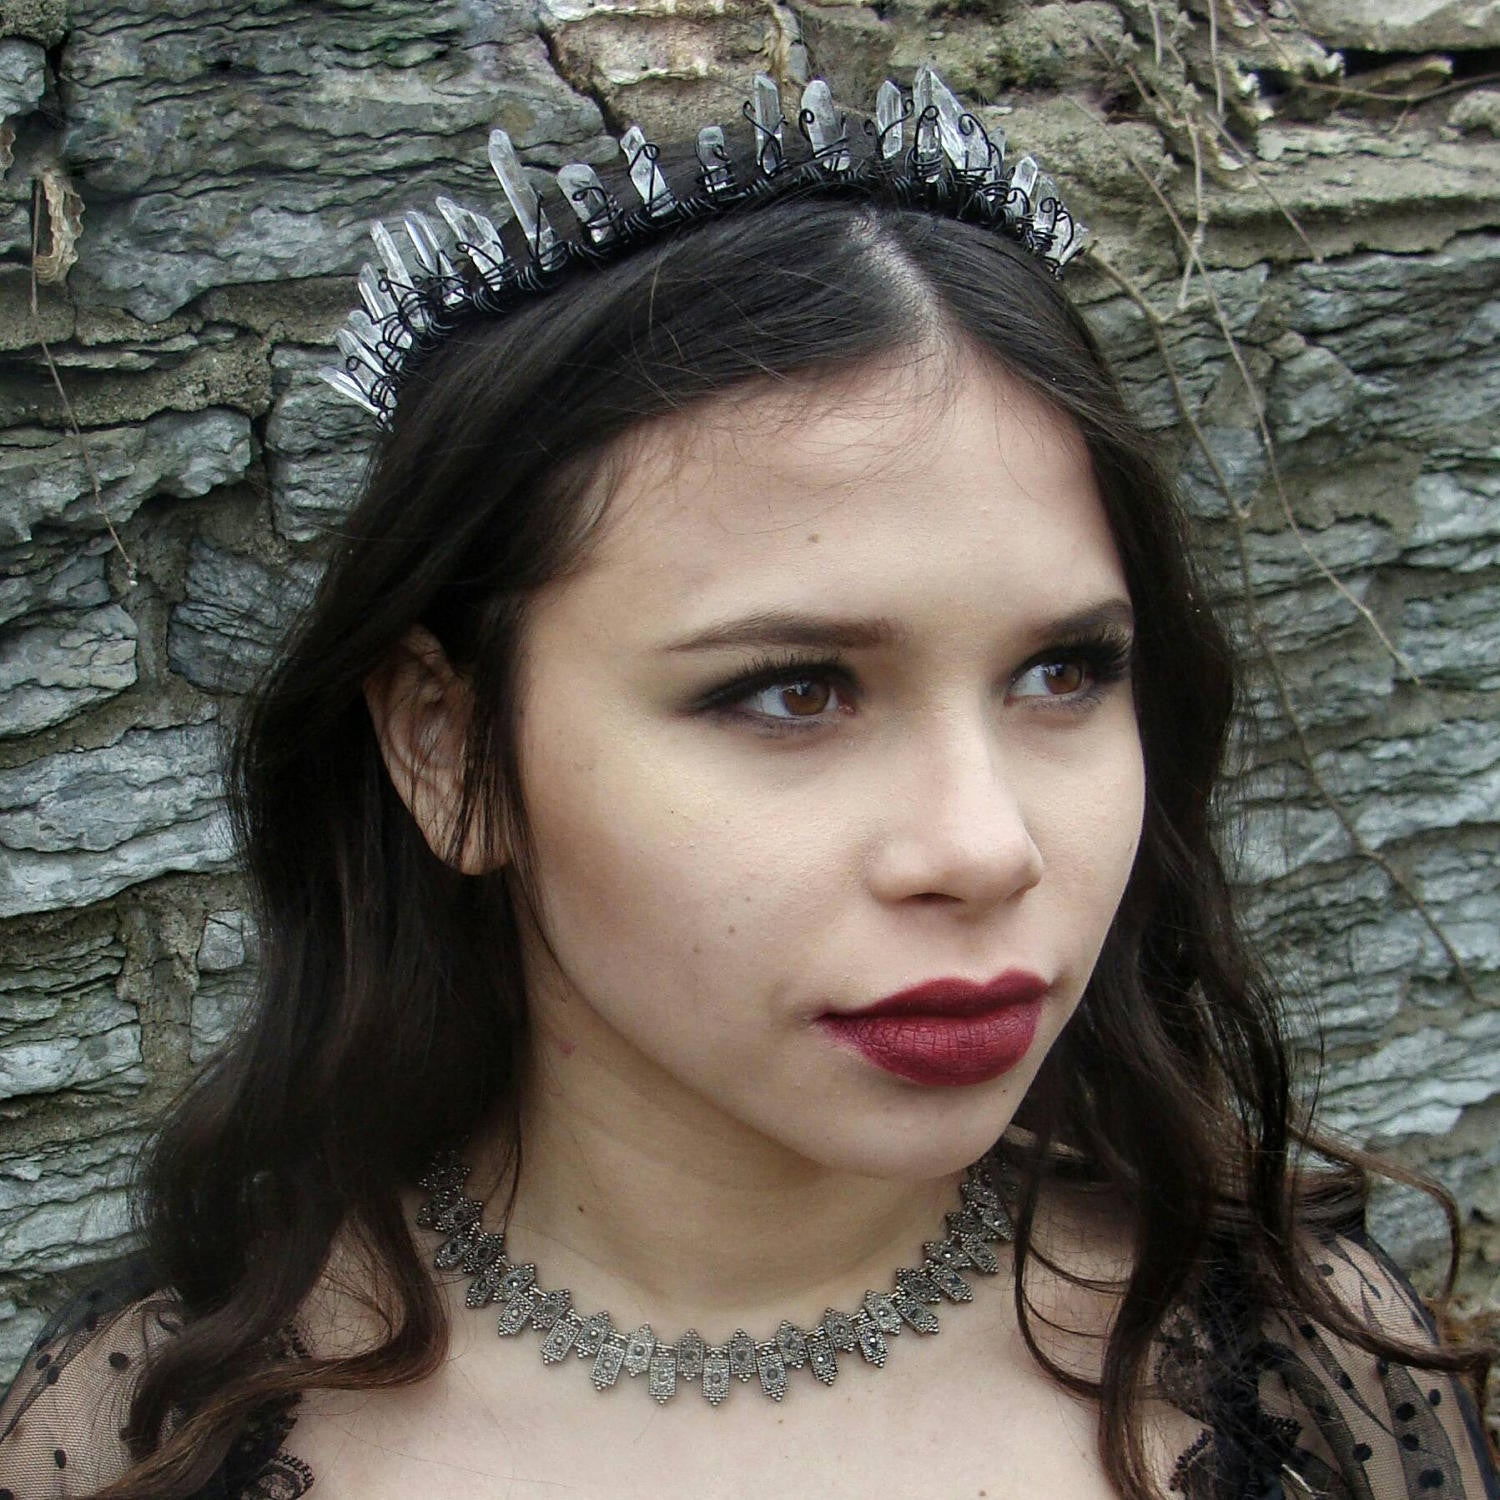 Crystal Crown - Evil Queen Crown - Black Crown - Goth - Ren Faire - Gothic Tiara - Alternative Wedding - Queen Cosplay - Princess Cosplay - Handmade Jewelry - Ren Faire - DRAVYNMOOR